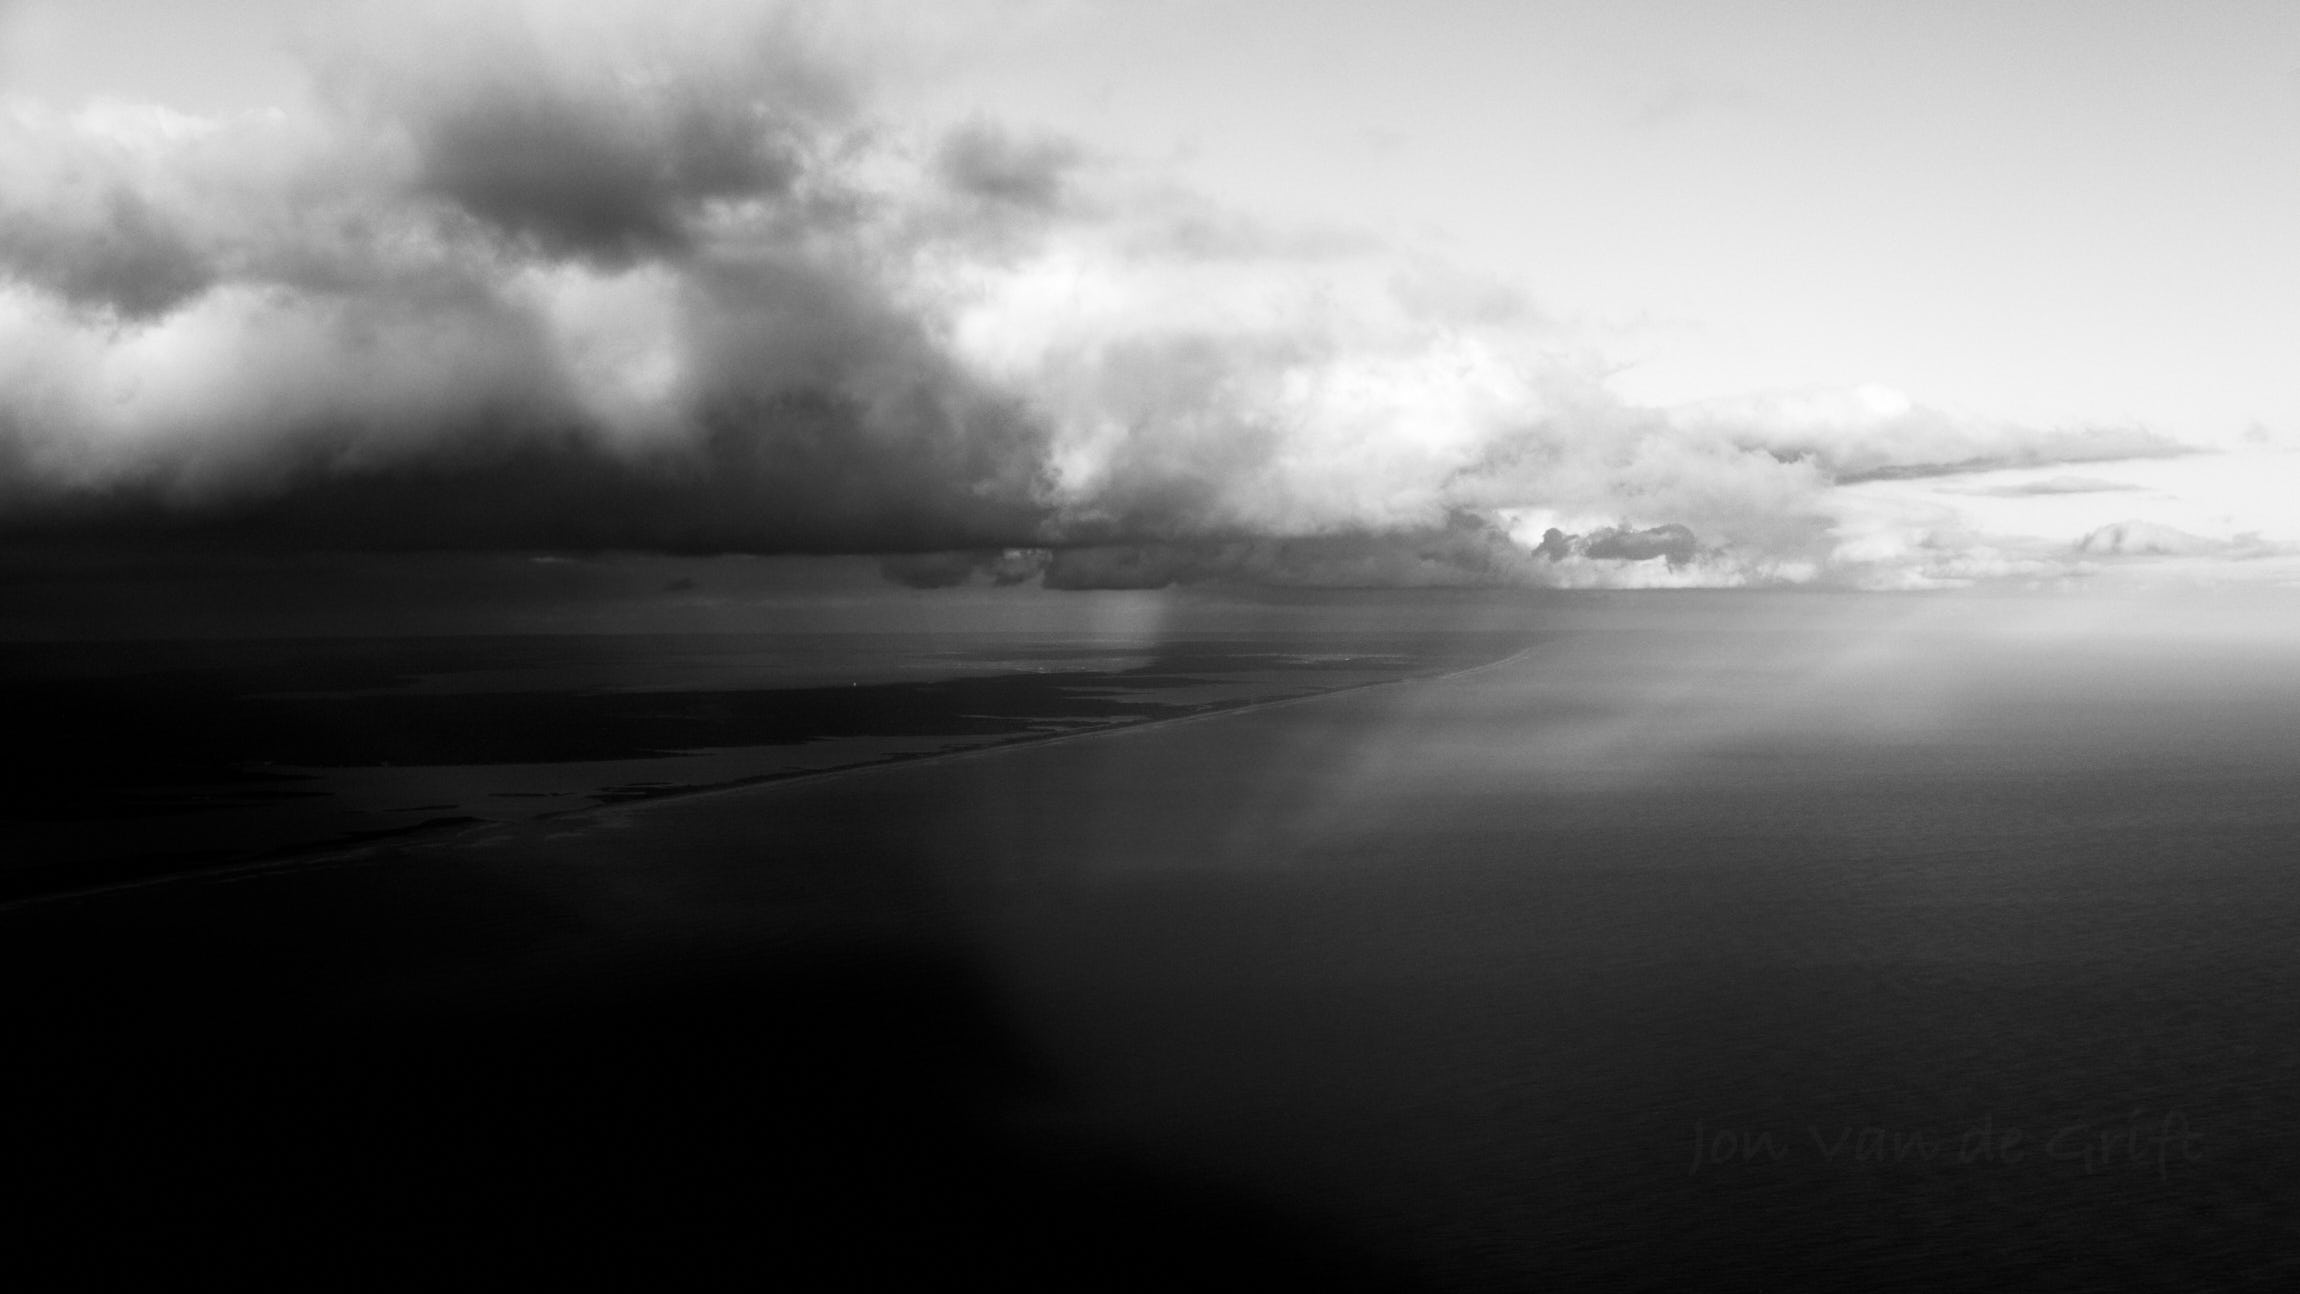 Monochrome aerial photograph of a storm over islands in the ocean.